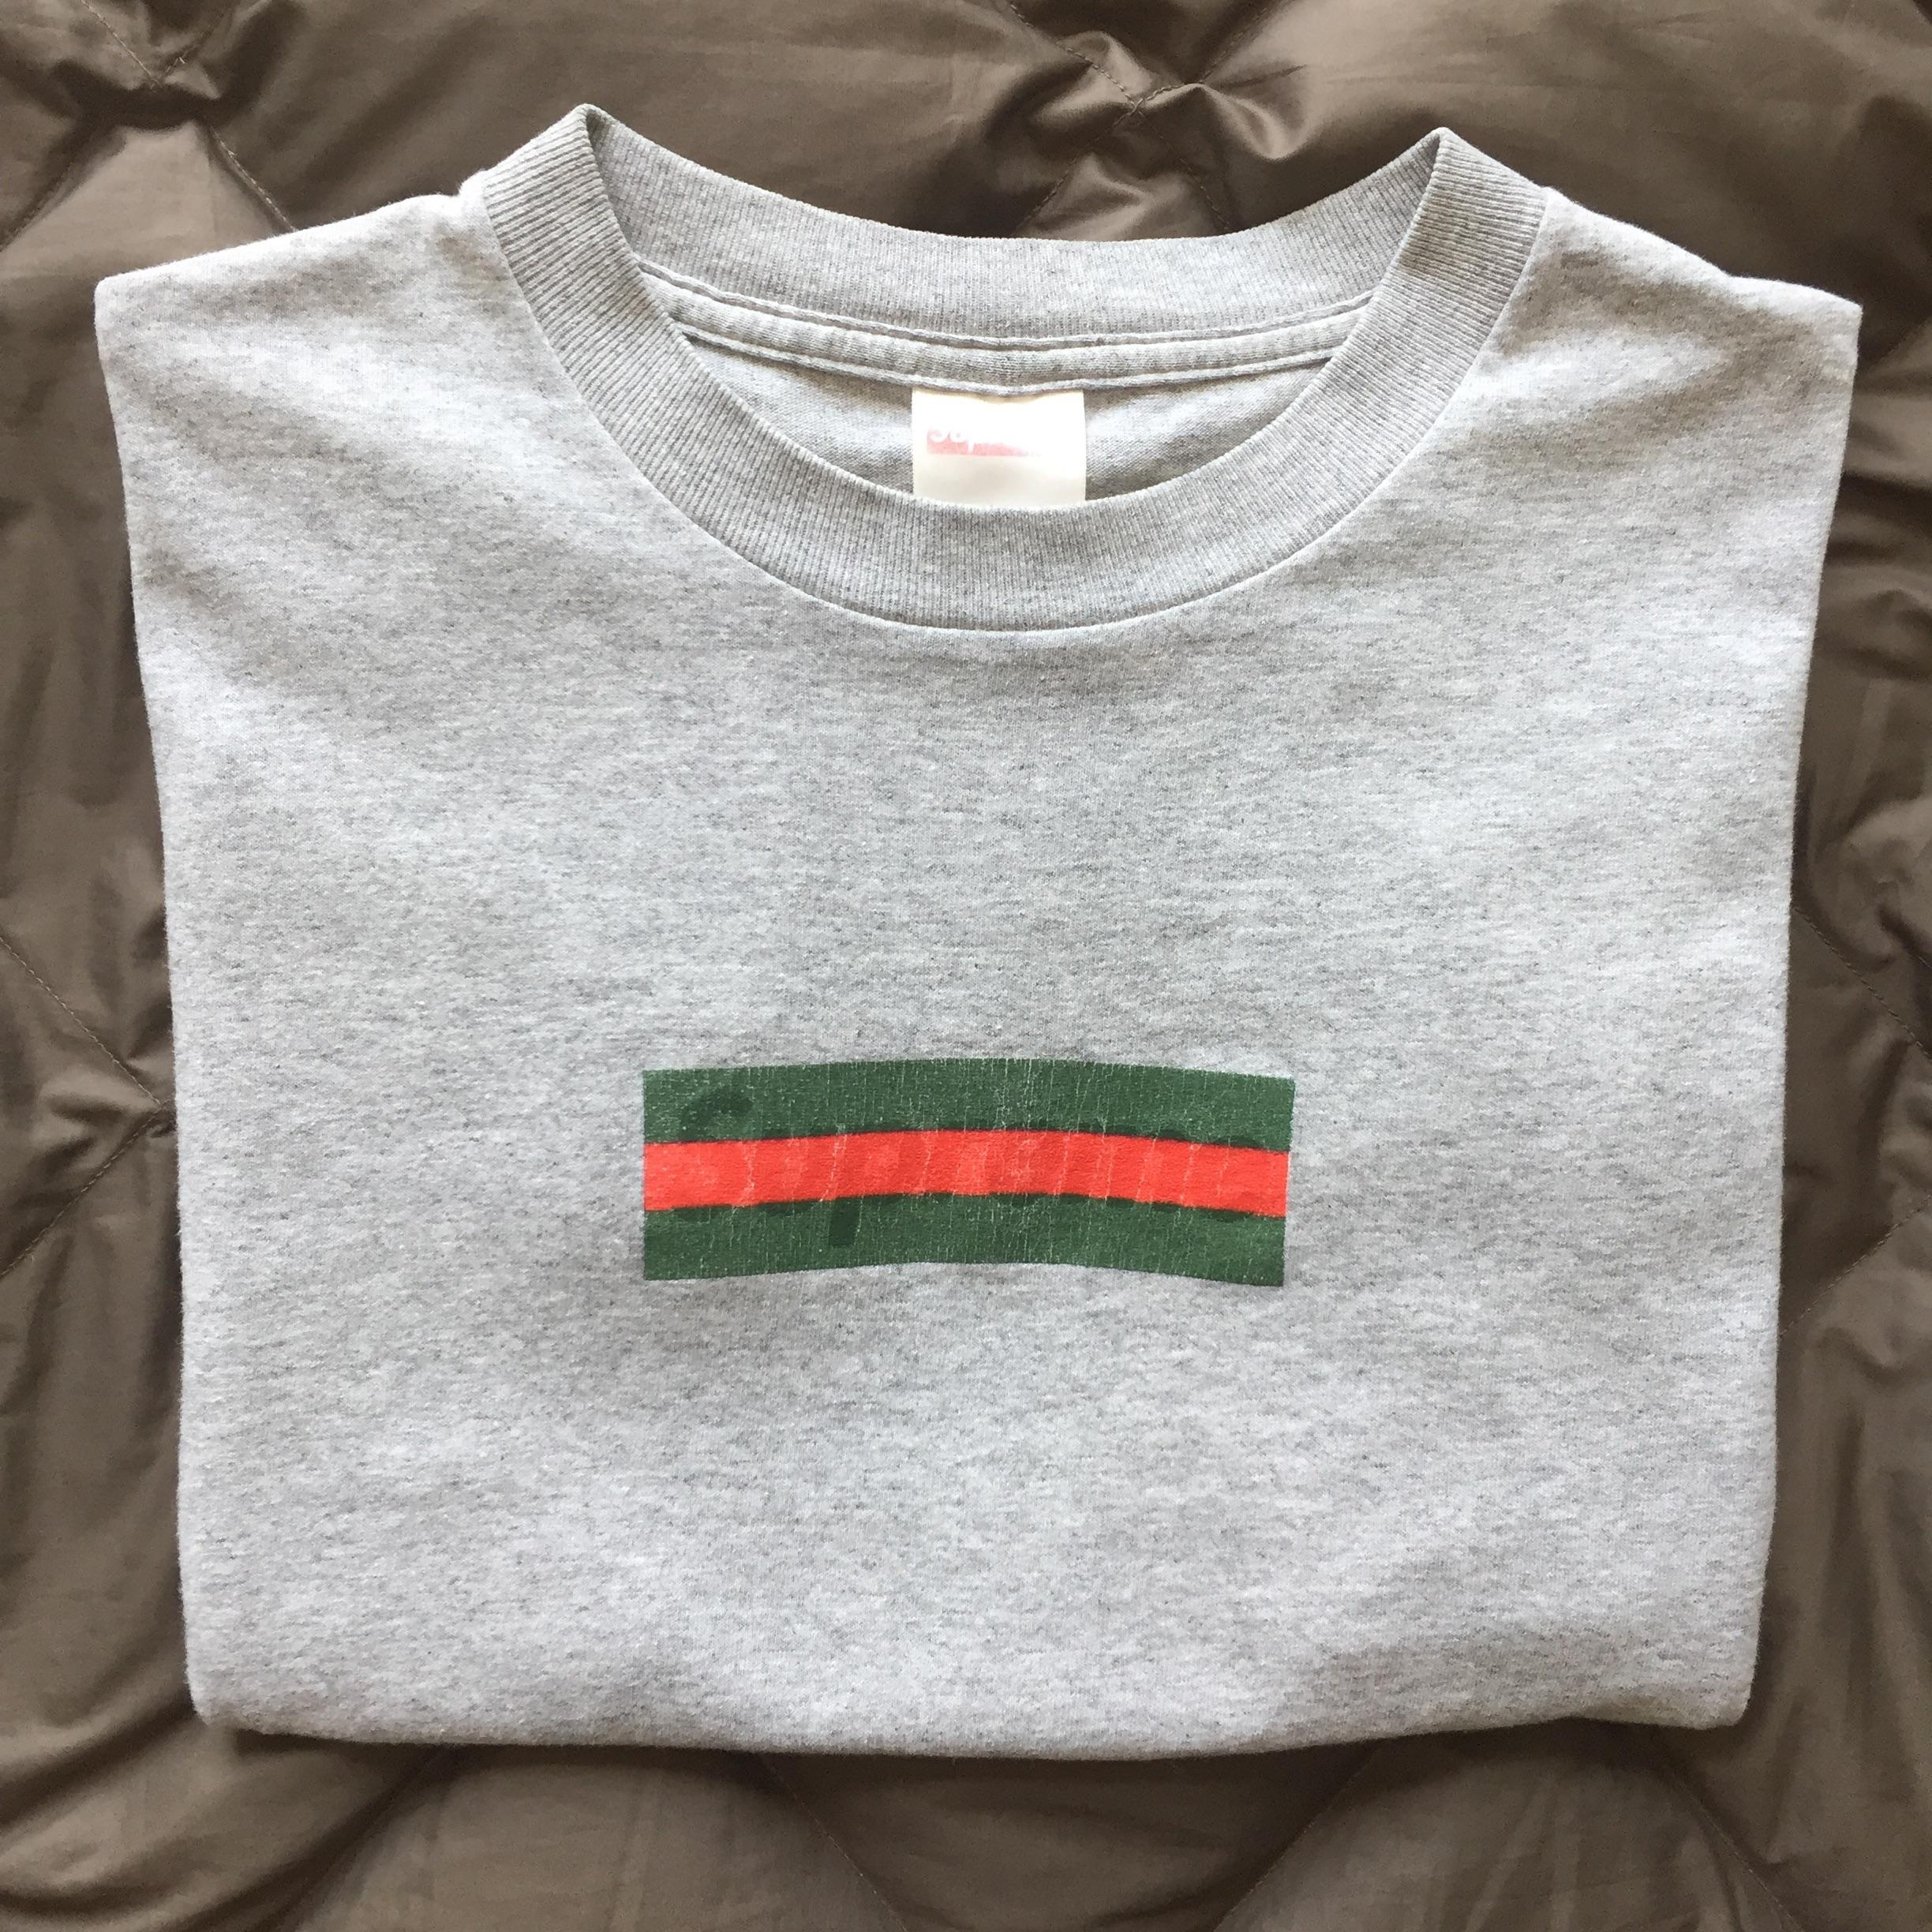 LPU] Gucci Box Logo Tee : supremeclothing.